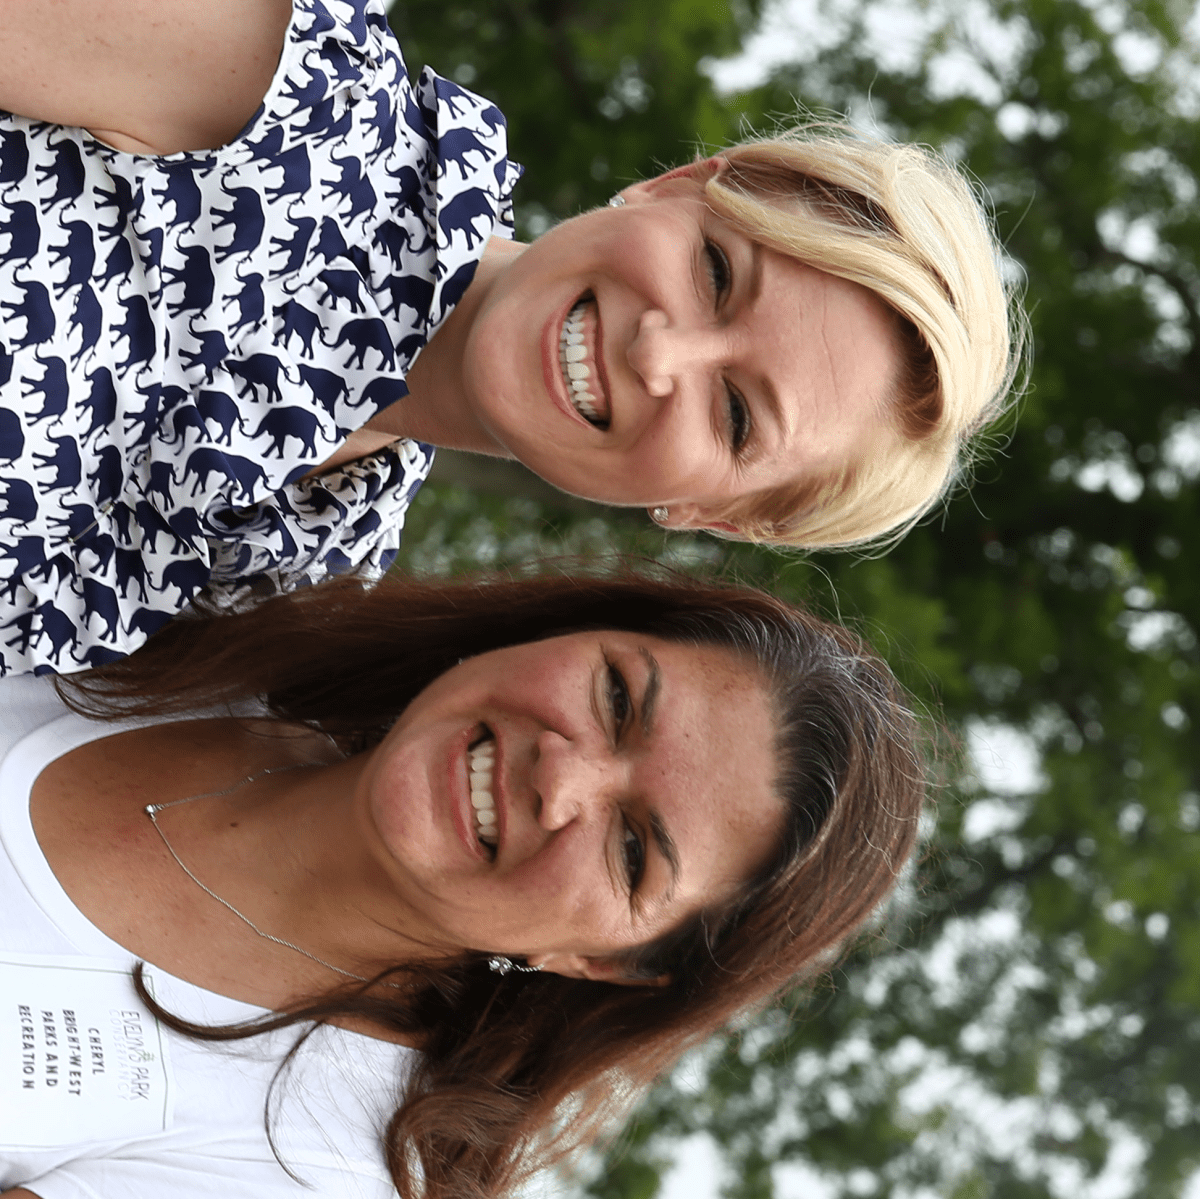 News, Shelby, Evelyn's Park Groundbreaking, june 2015, State Rep Sarah Davis-Cheryl Bright-West_Photo